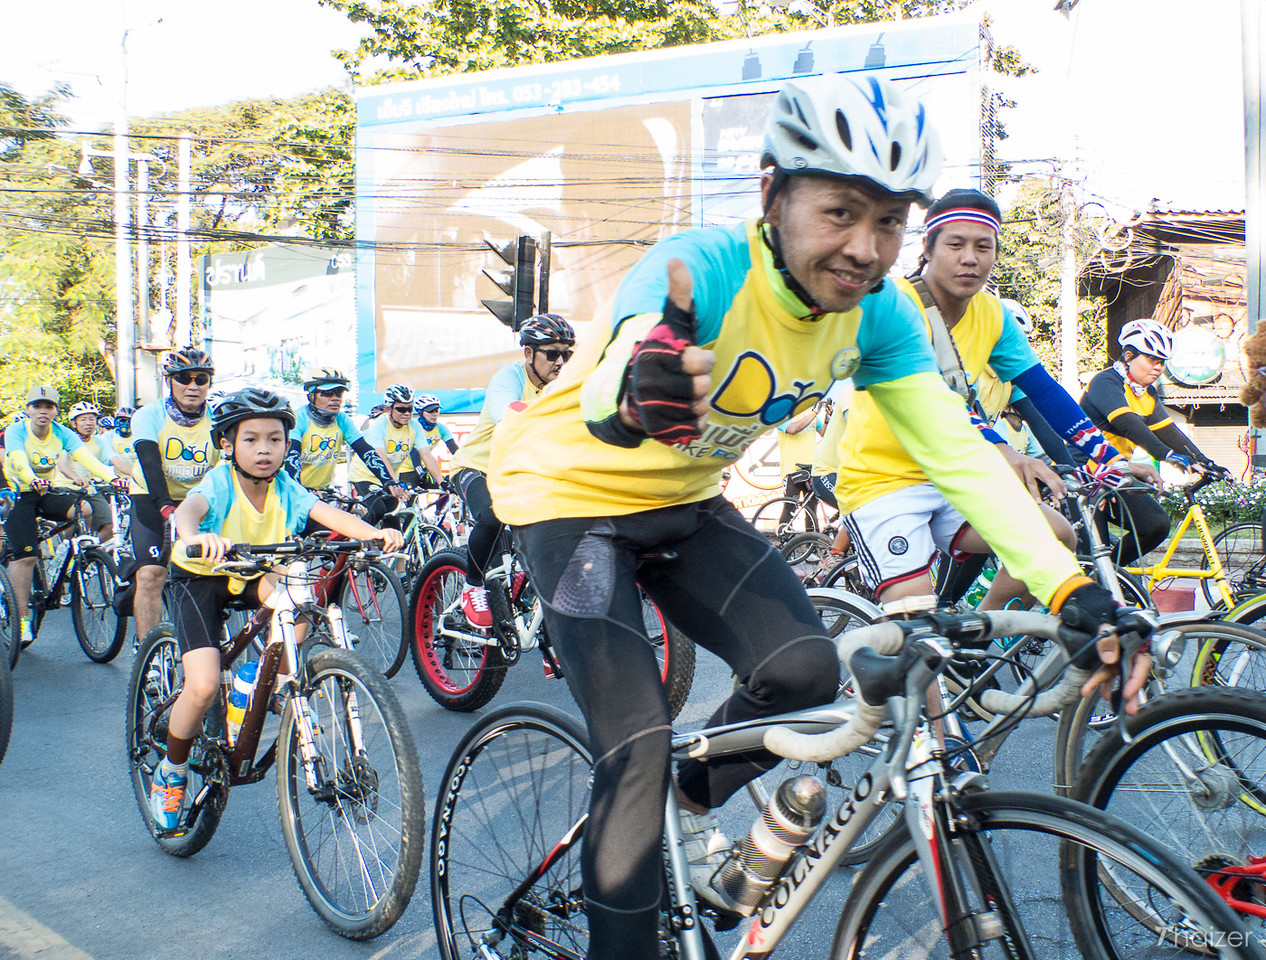 thumbs up for Bike for Dad, Thailand